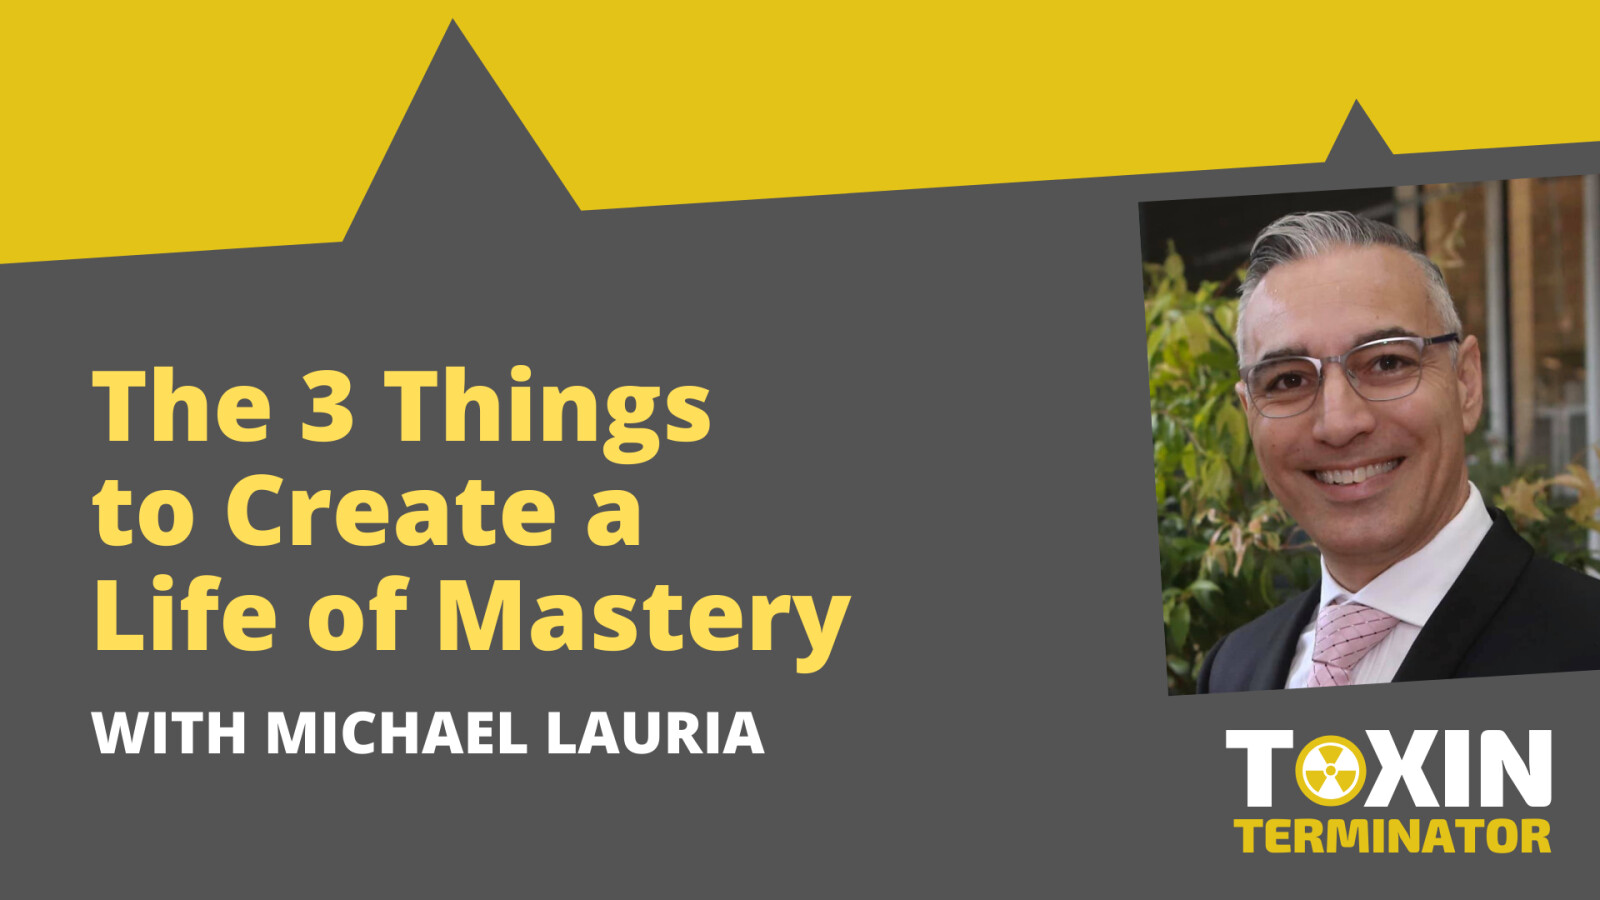 The 3 Things to Create a Life of Mastery with Michael Lauria